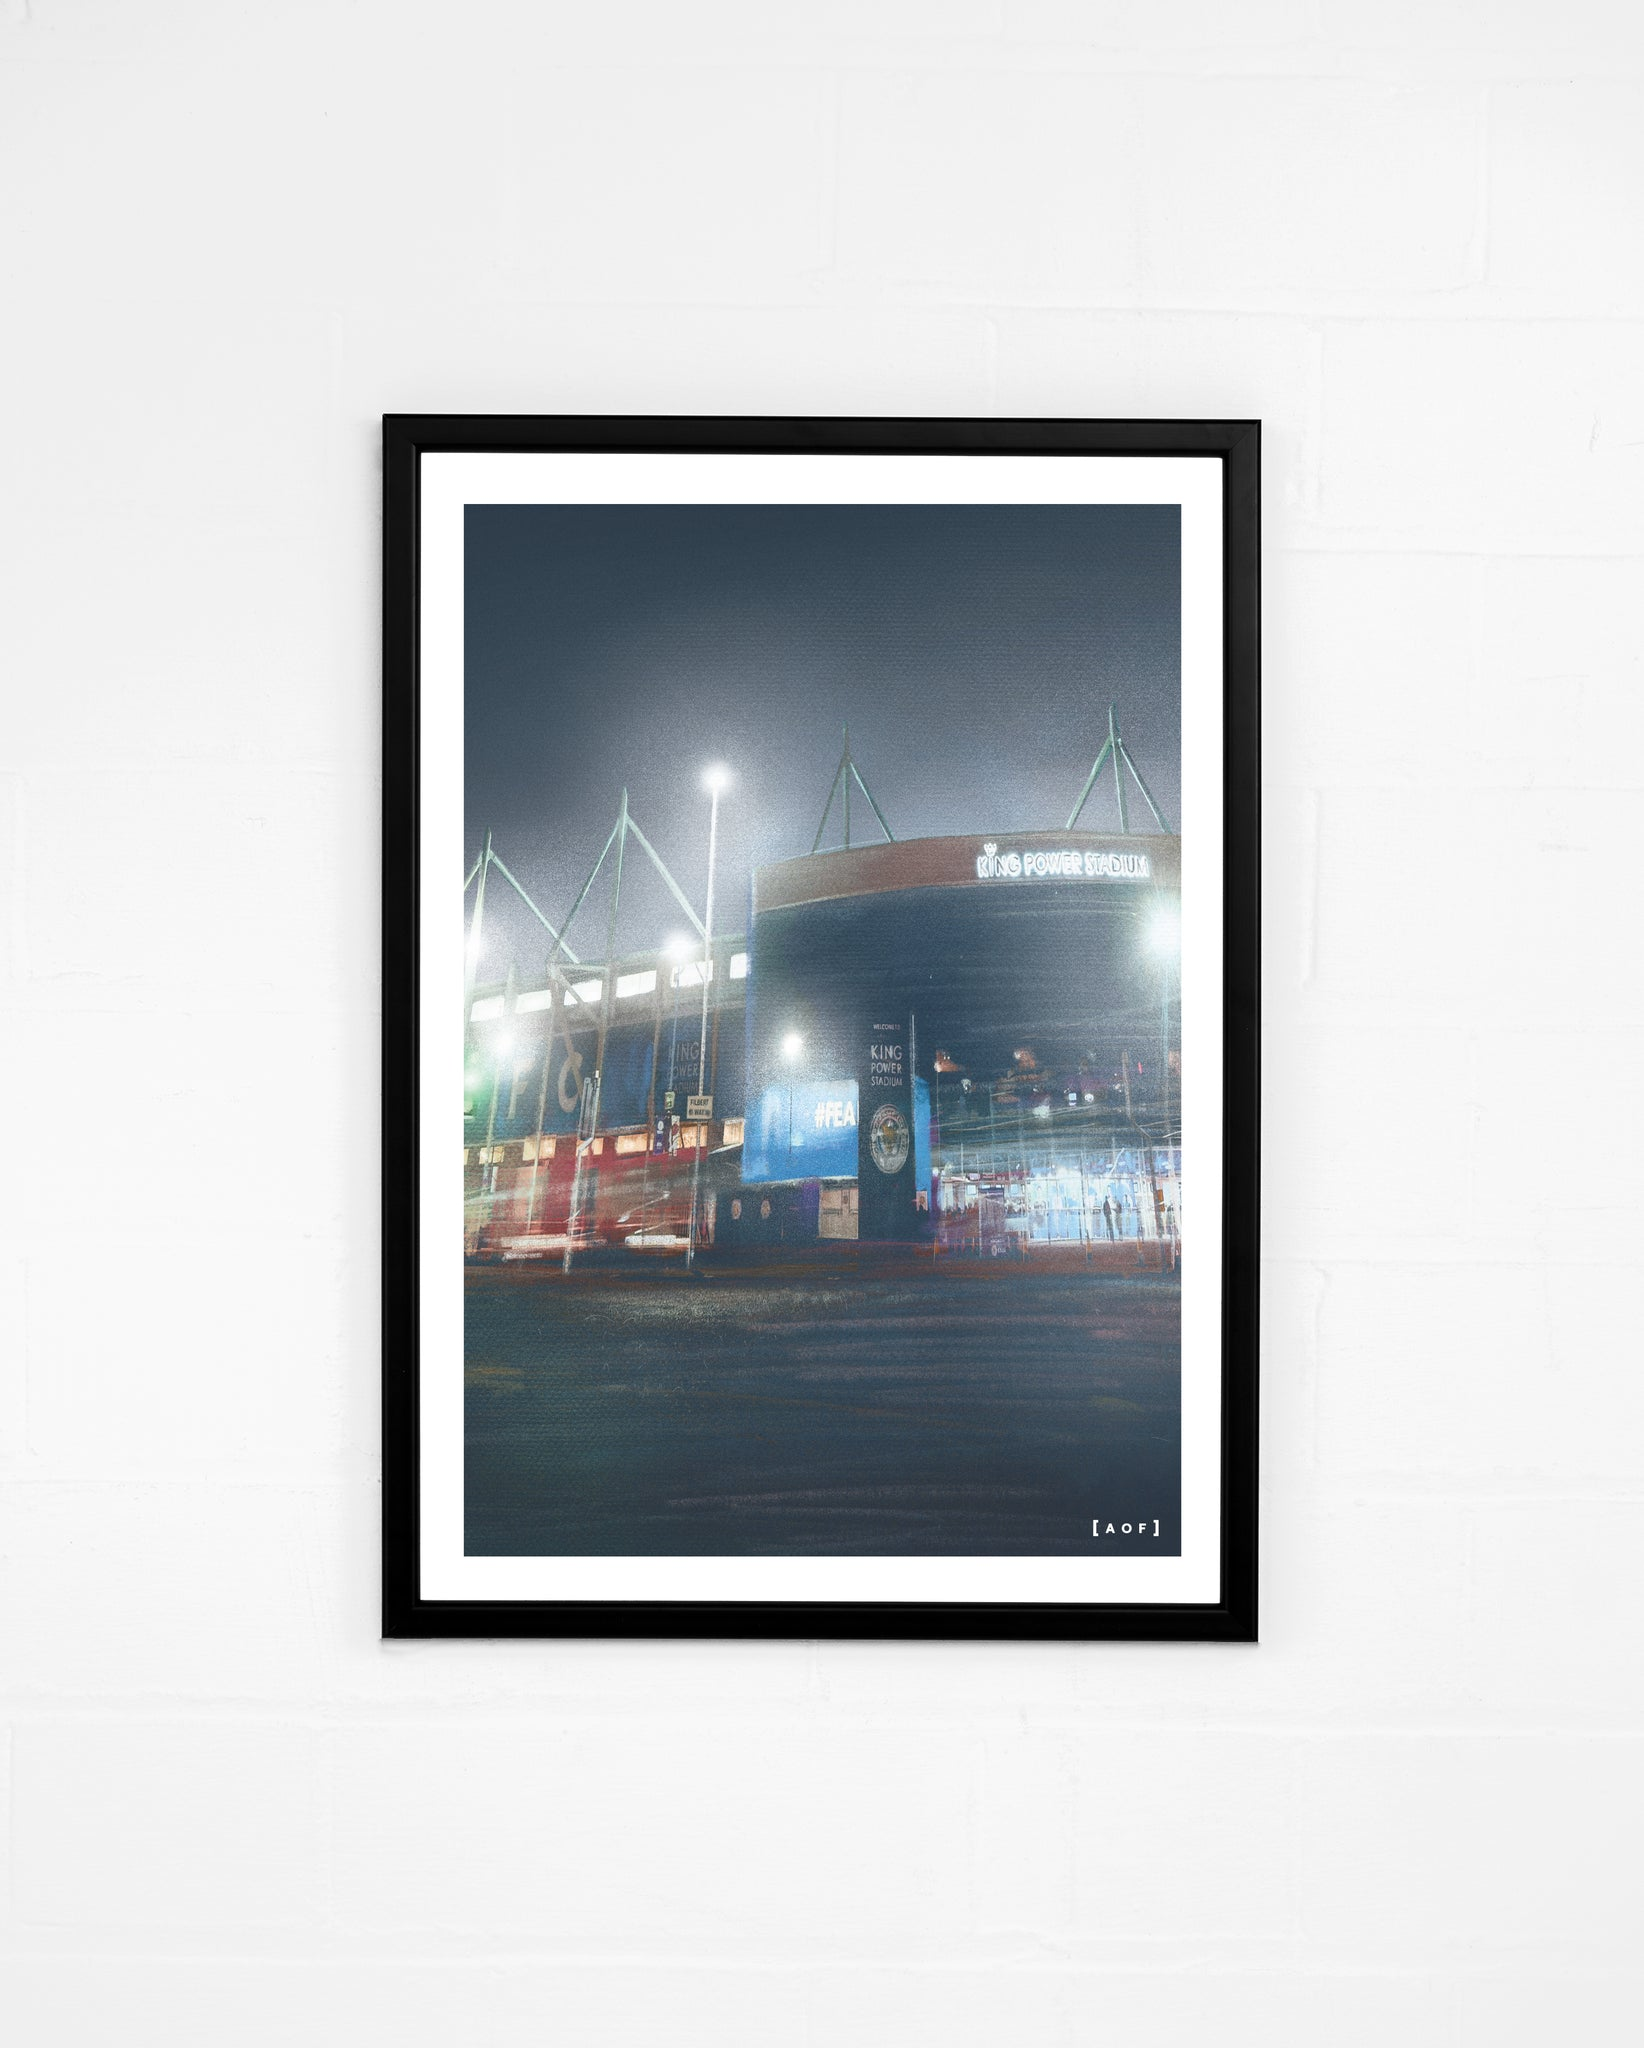 King Power Stadium by Night - Print or Canvas